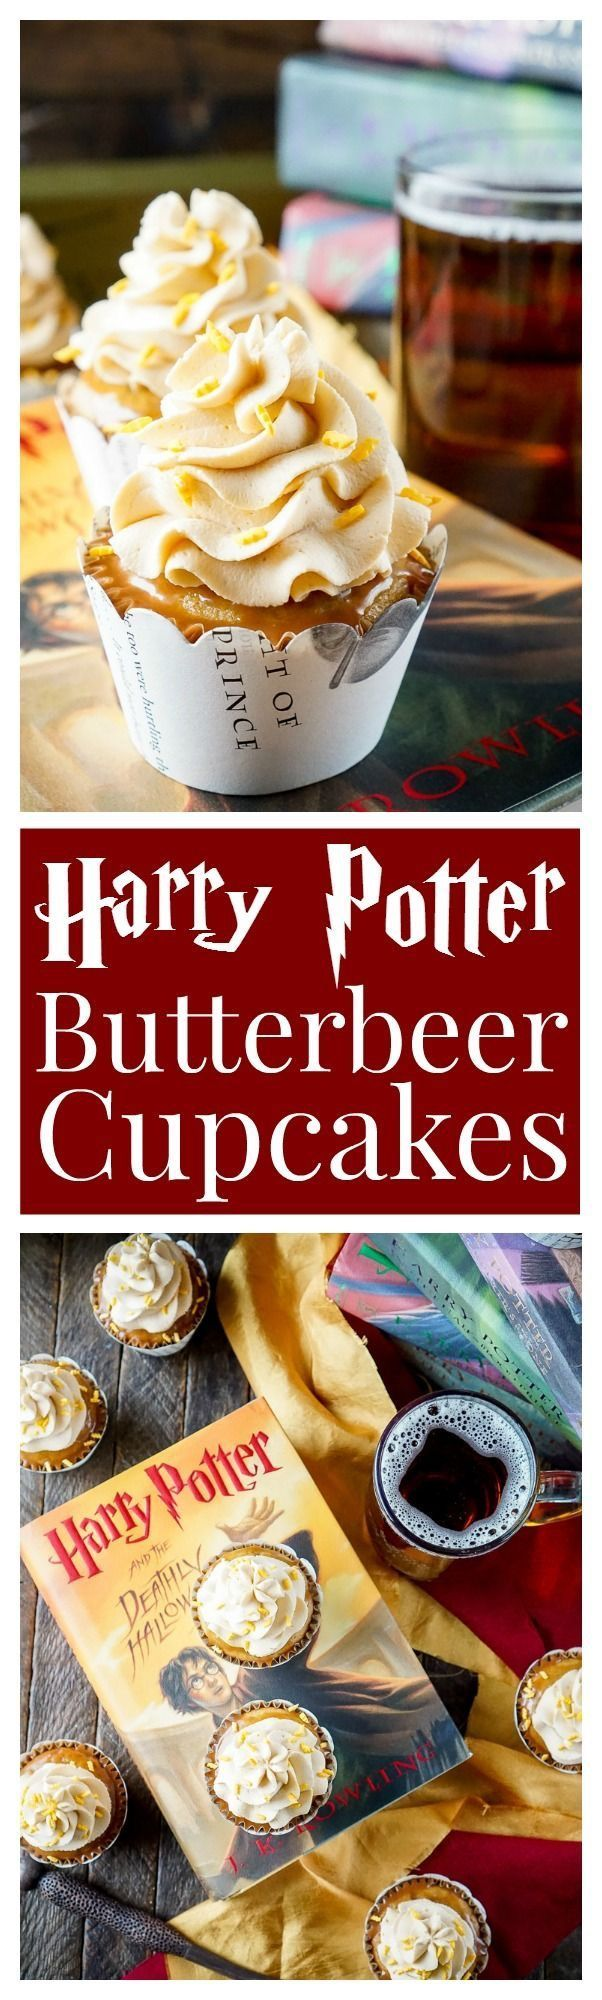 Harry Potter Butterbeer Cupcakes - Sugar & Soul | Glamour Shots